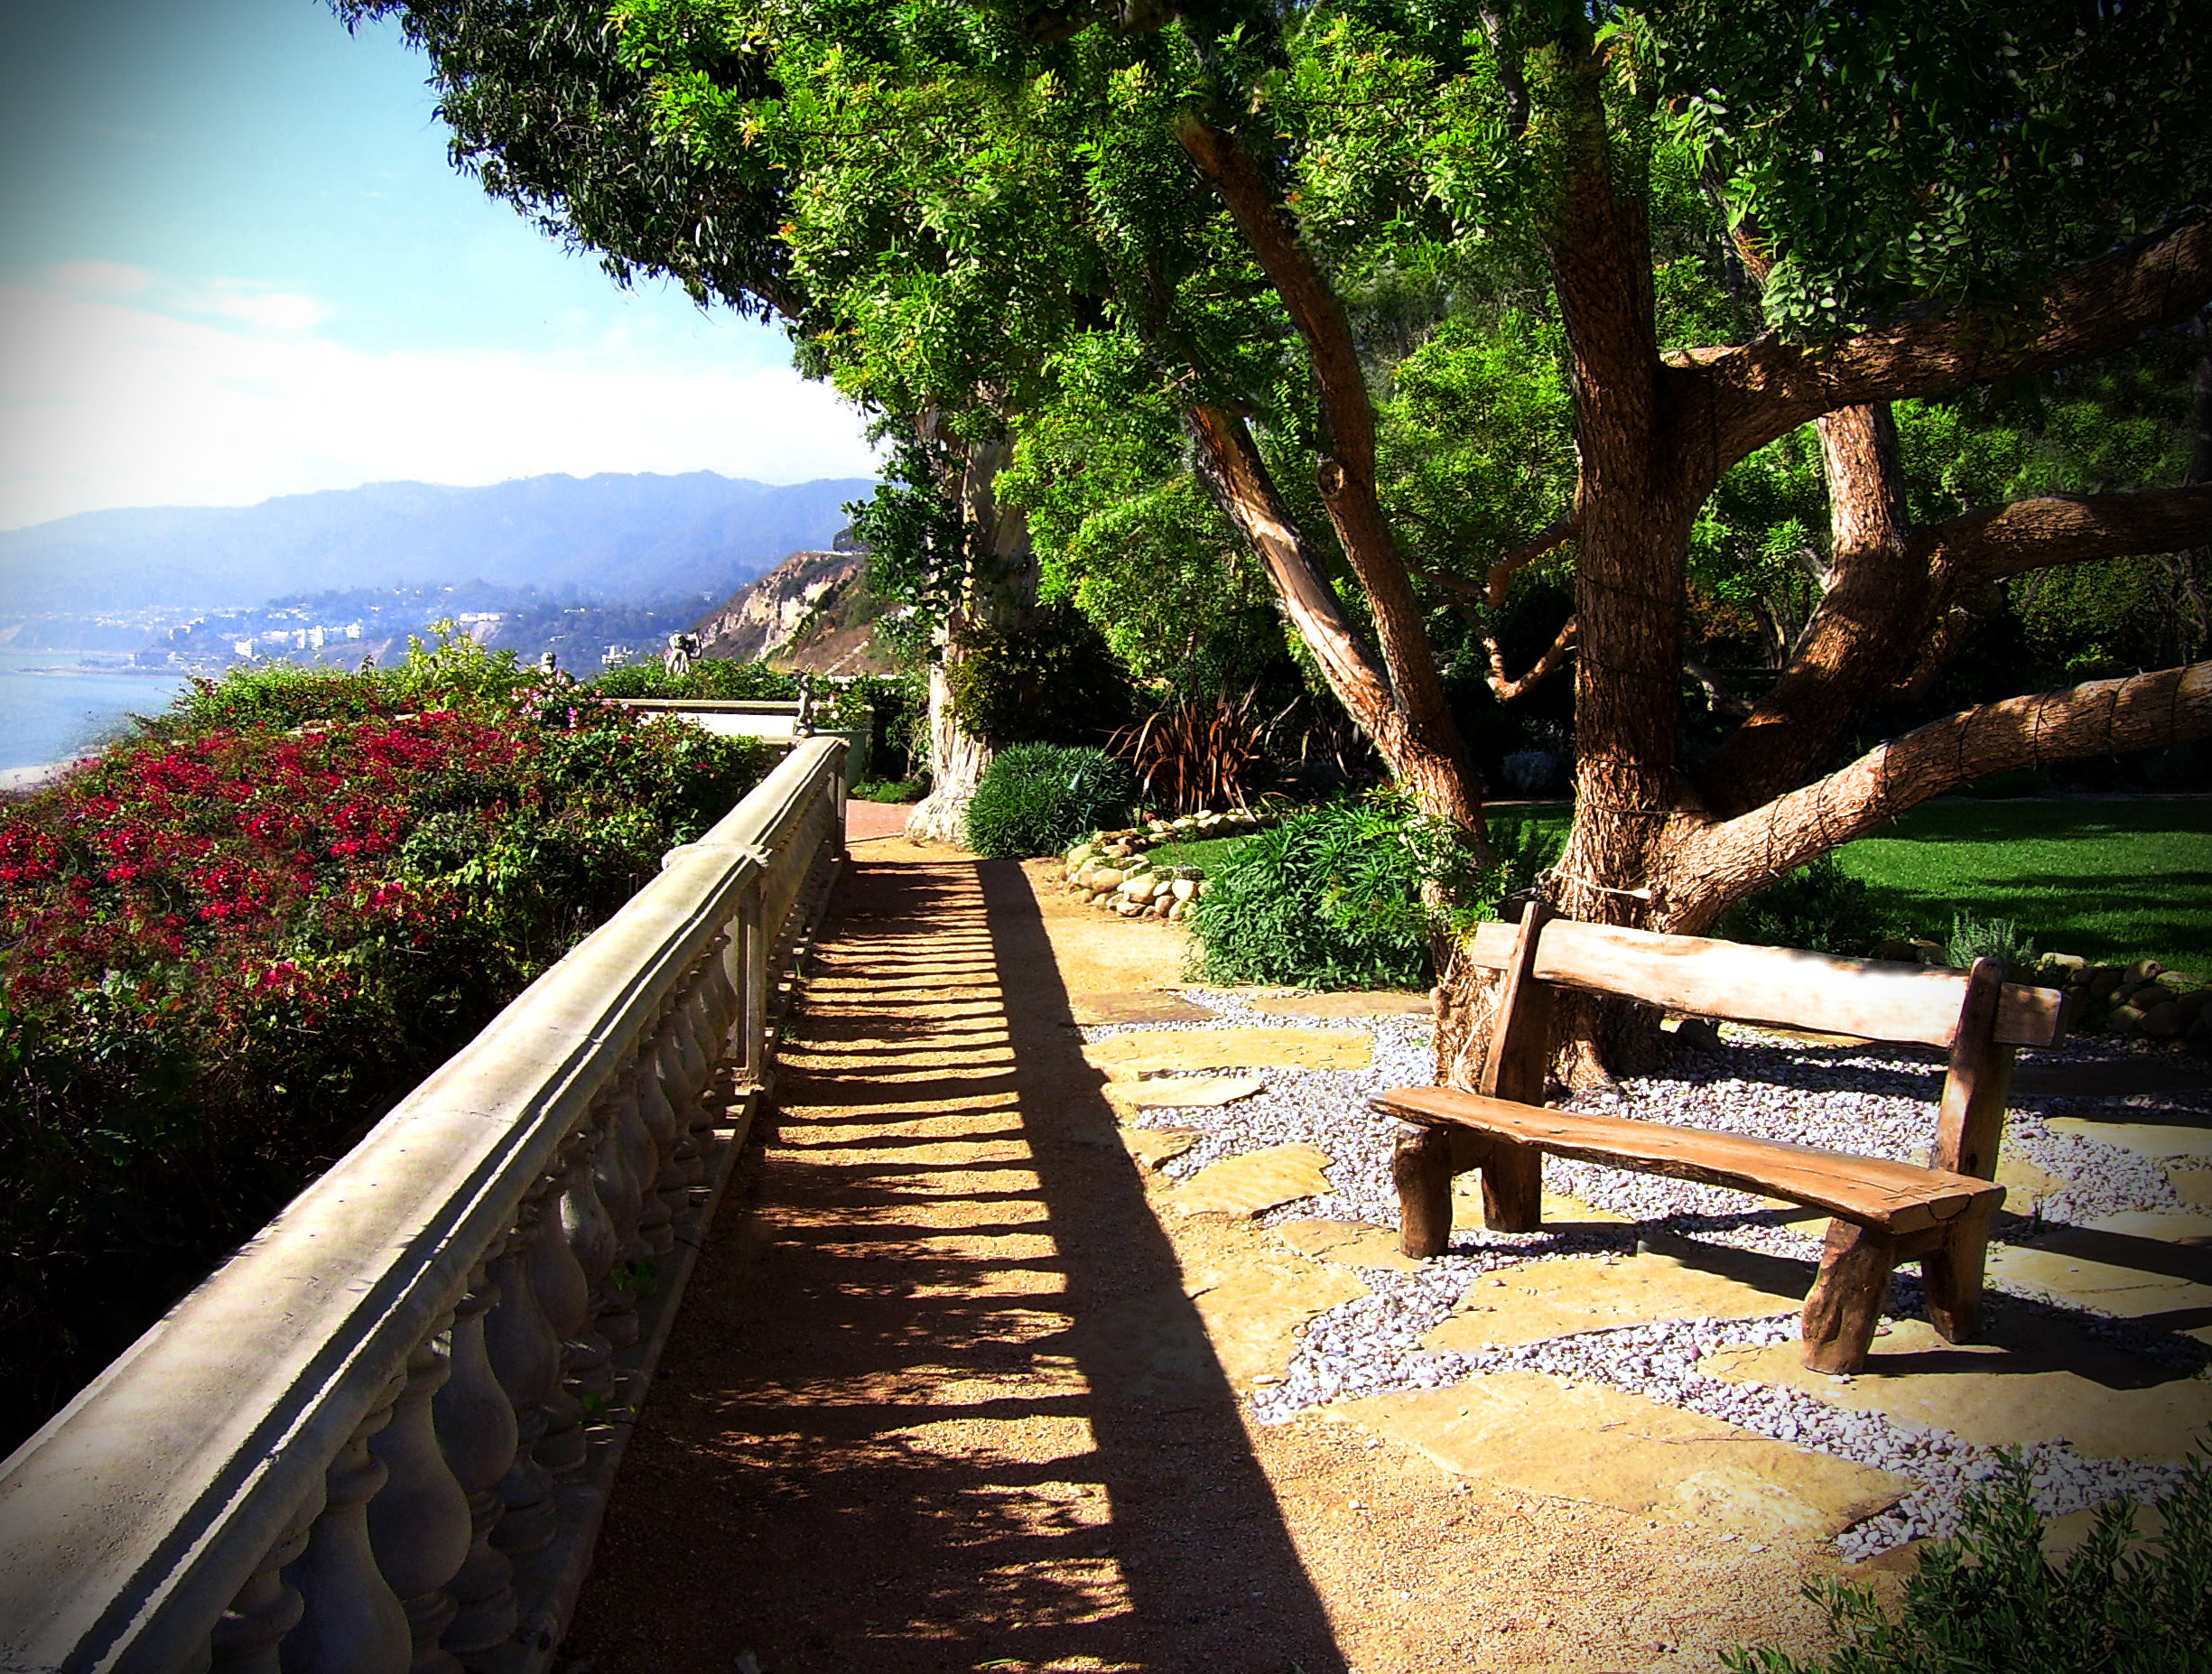 Walkway bench tree-a.jpg